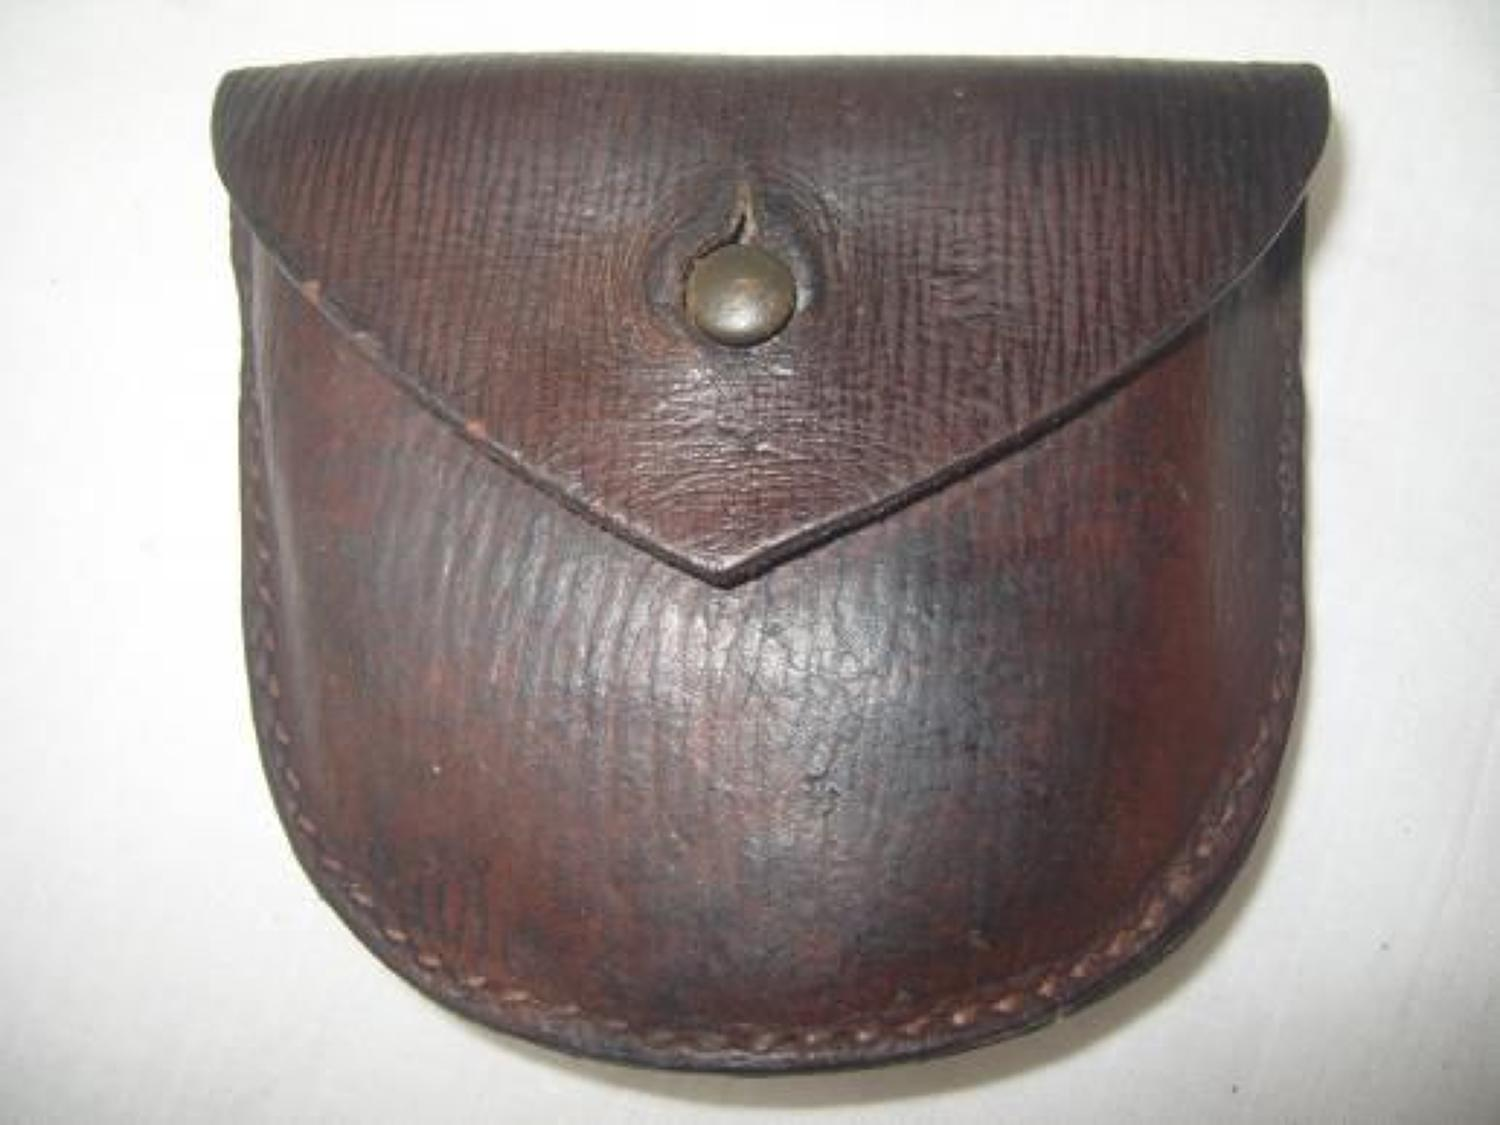 1903 Pattern British WW1 Revolver Ammunition Pouch